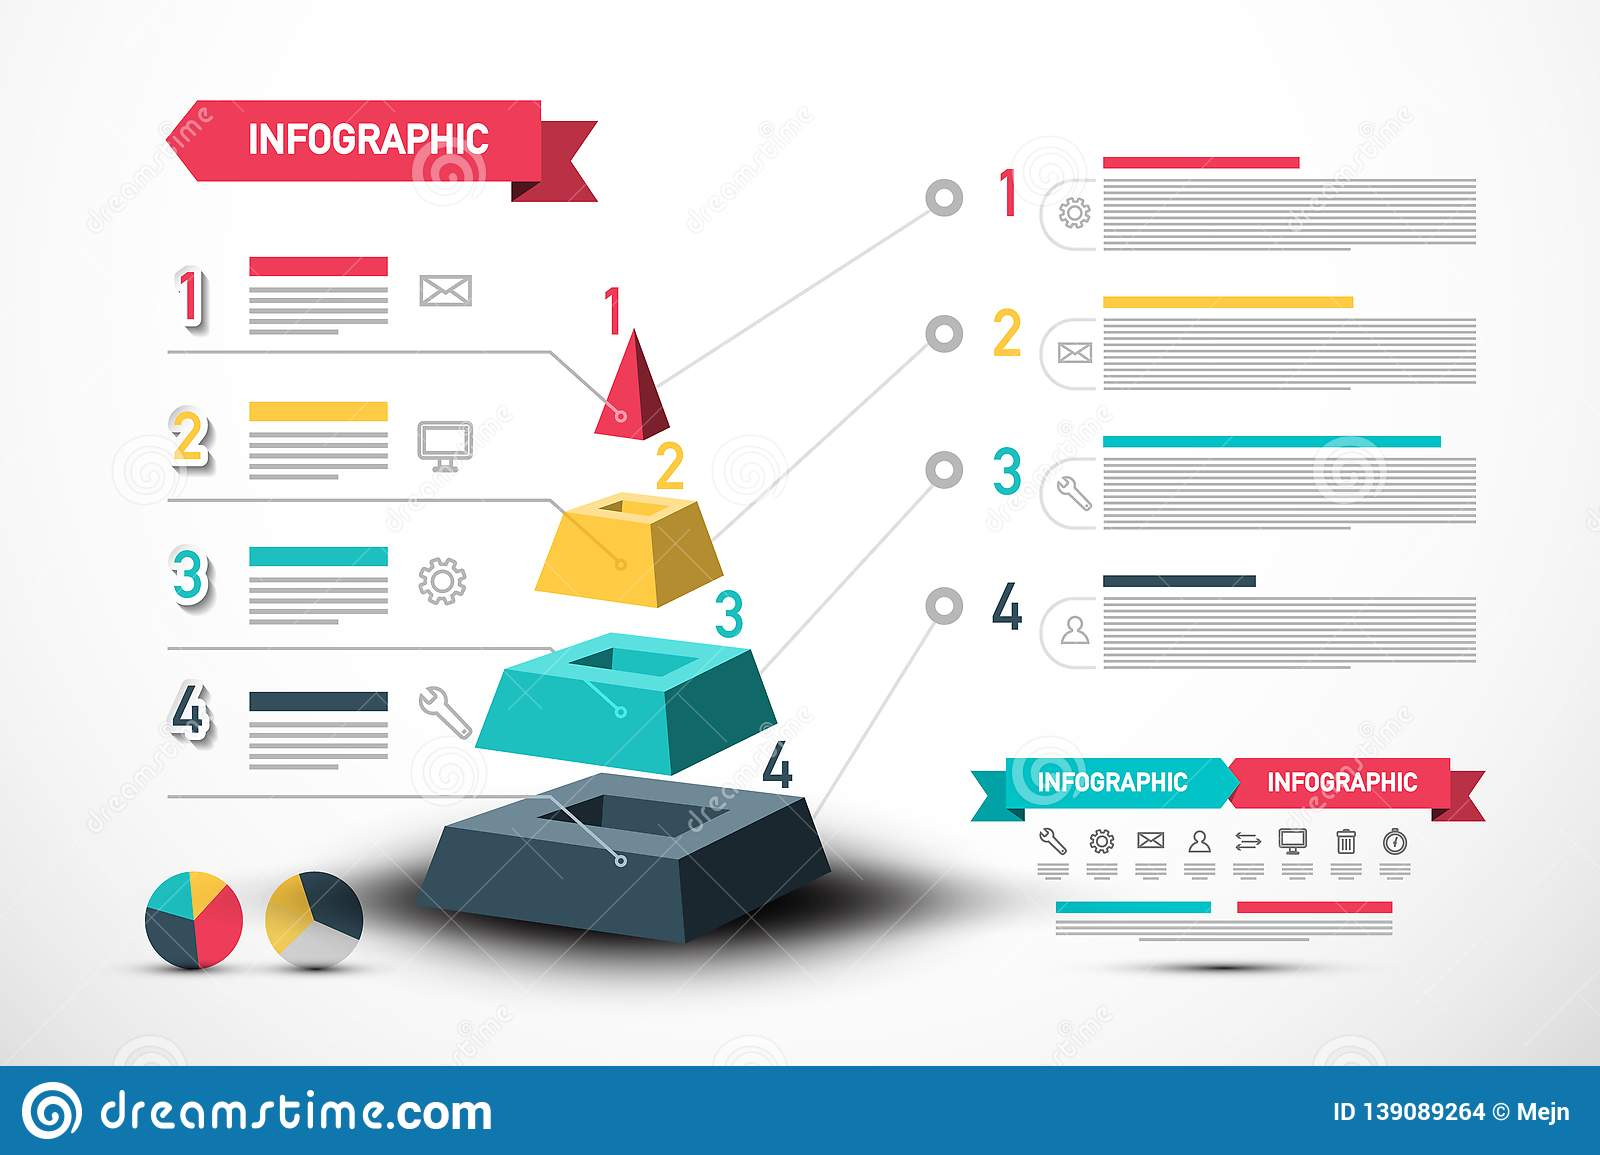 Infographic Vector Design with Pyramid and Sample Texts. Four Steps Infographics Layout.